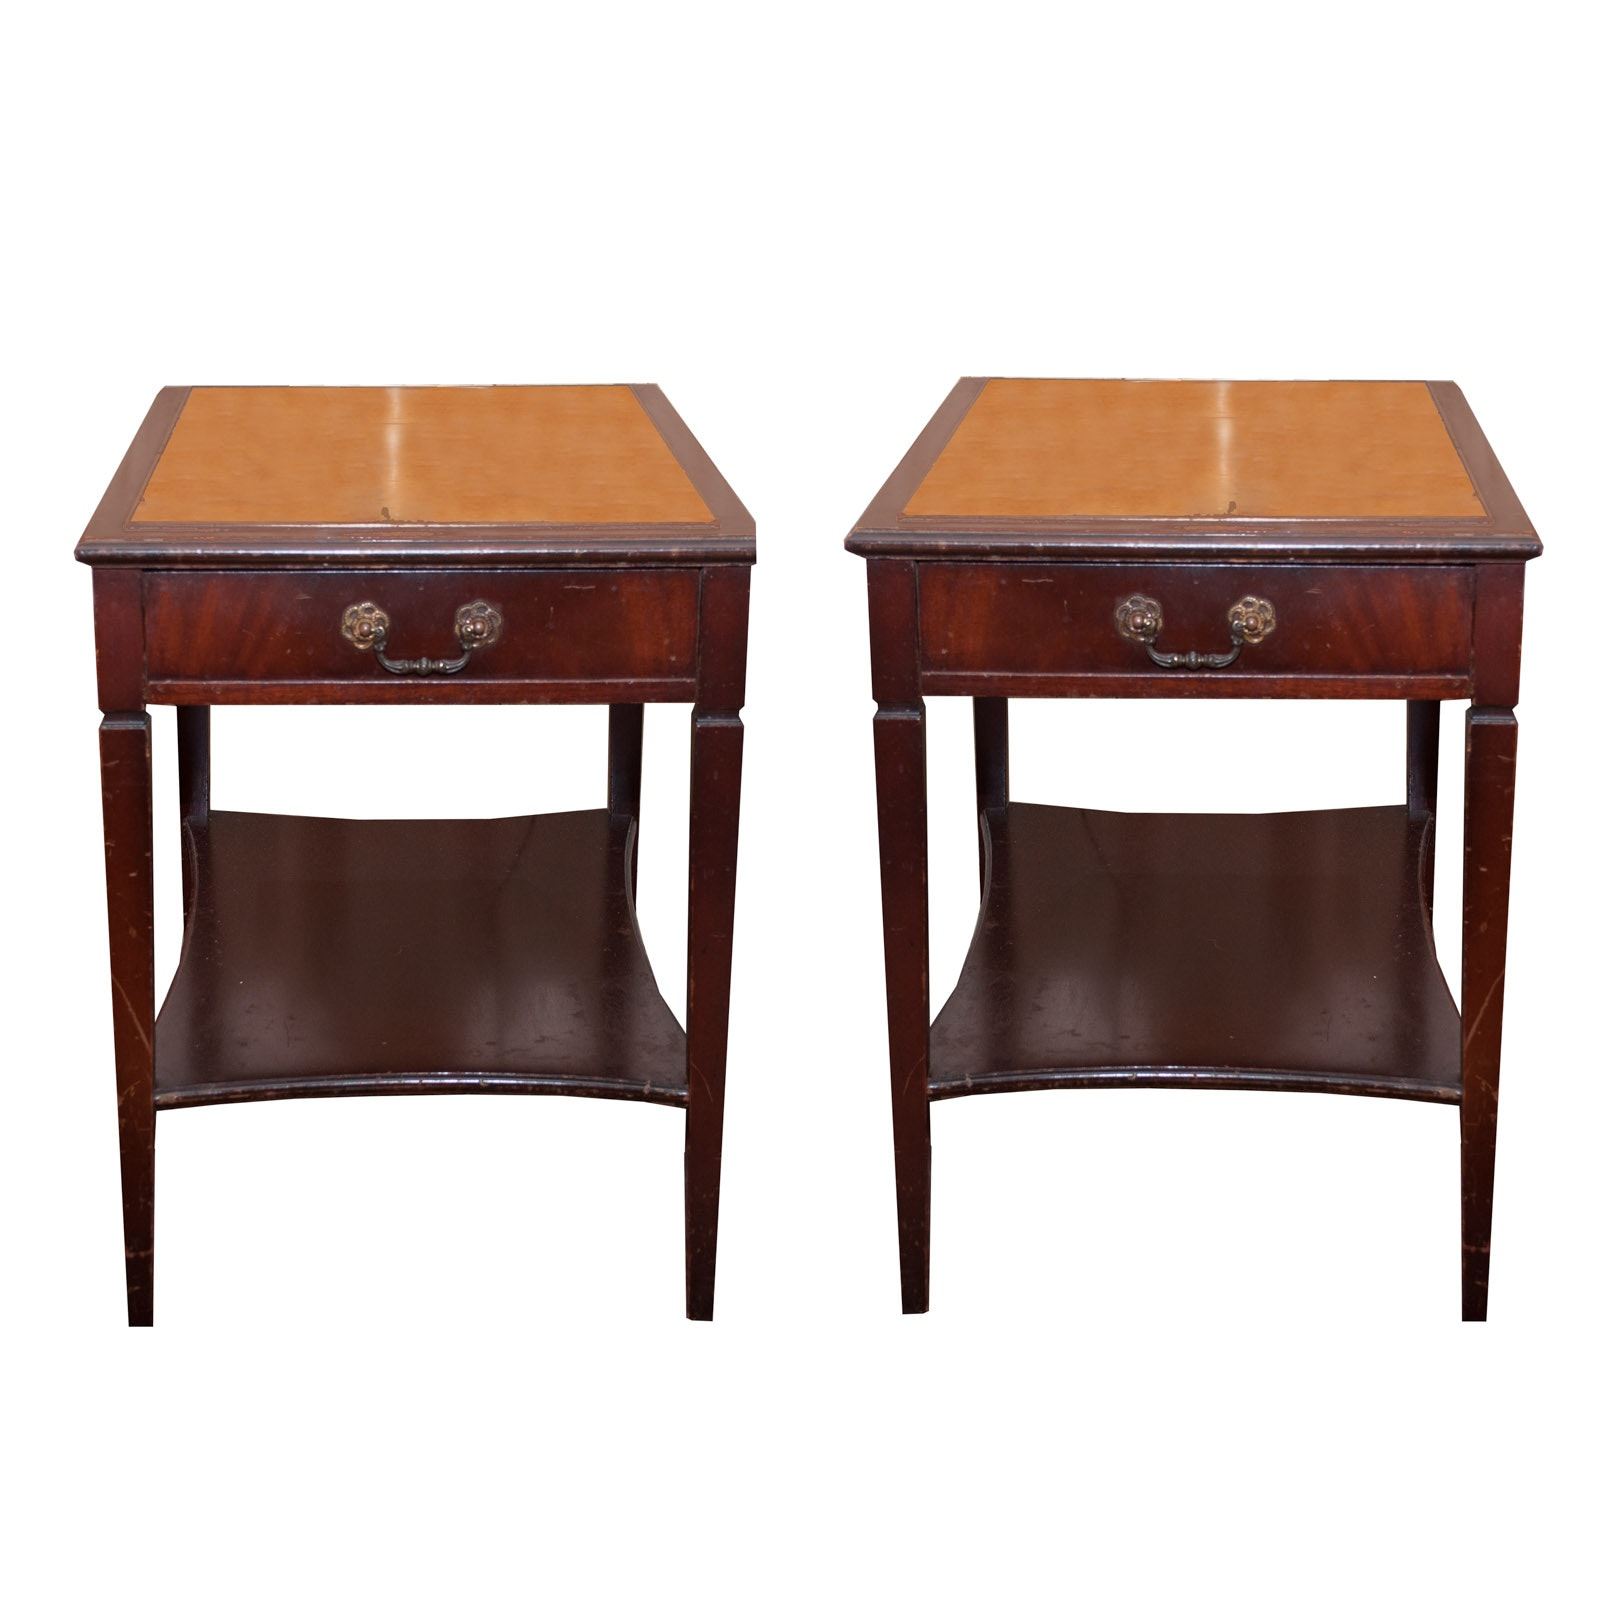 Mahogany End Tables with Leather Inset By Imperial Table Co., Mid-20th Century